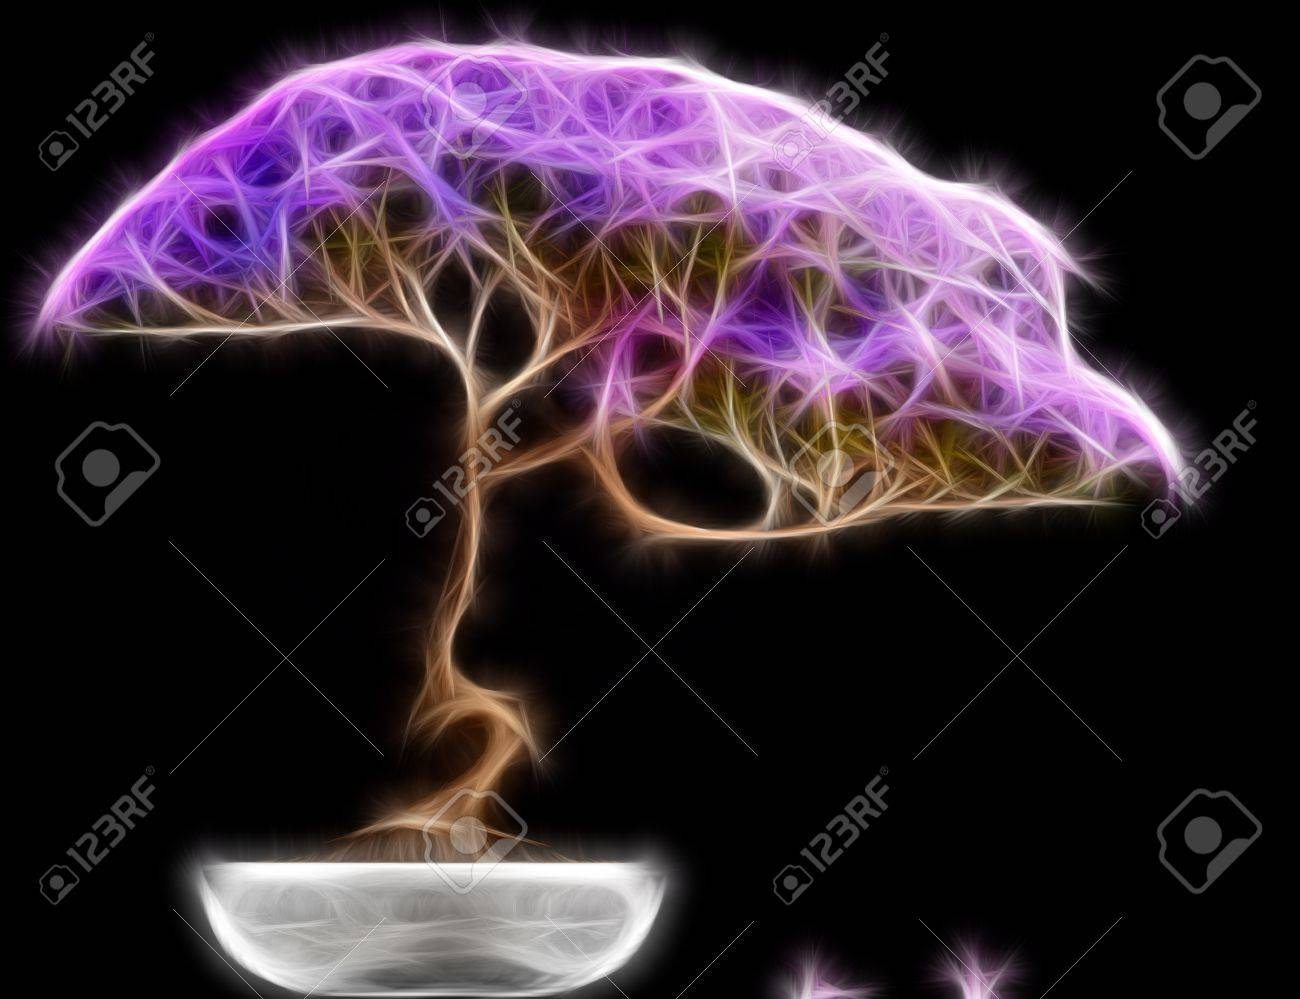 Abstract fractal Bonsai tree side view with a black background Stock Photo - 20940812